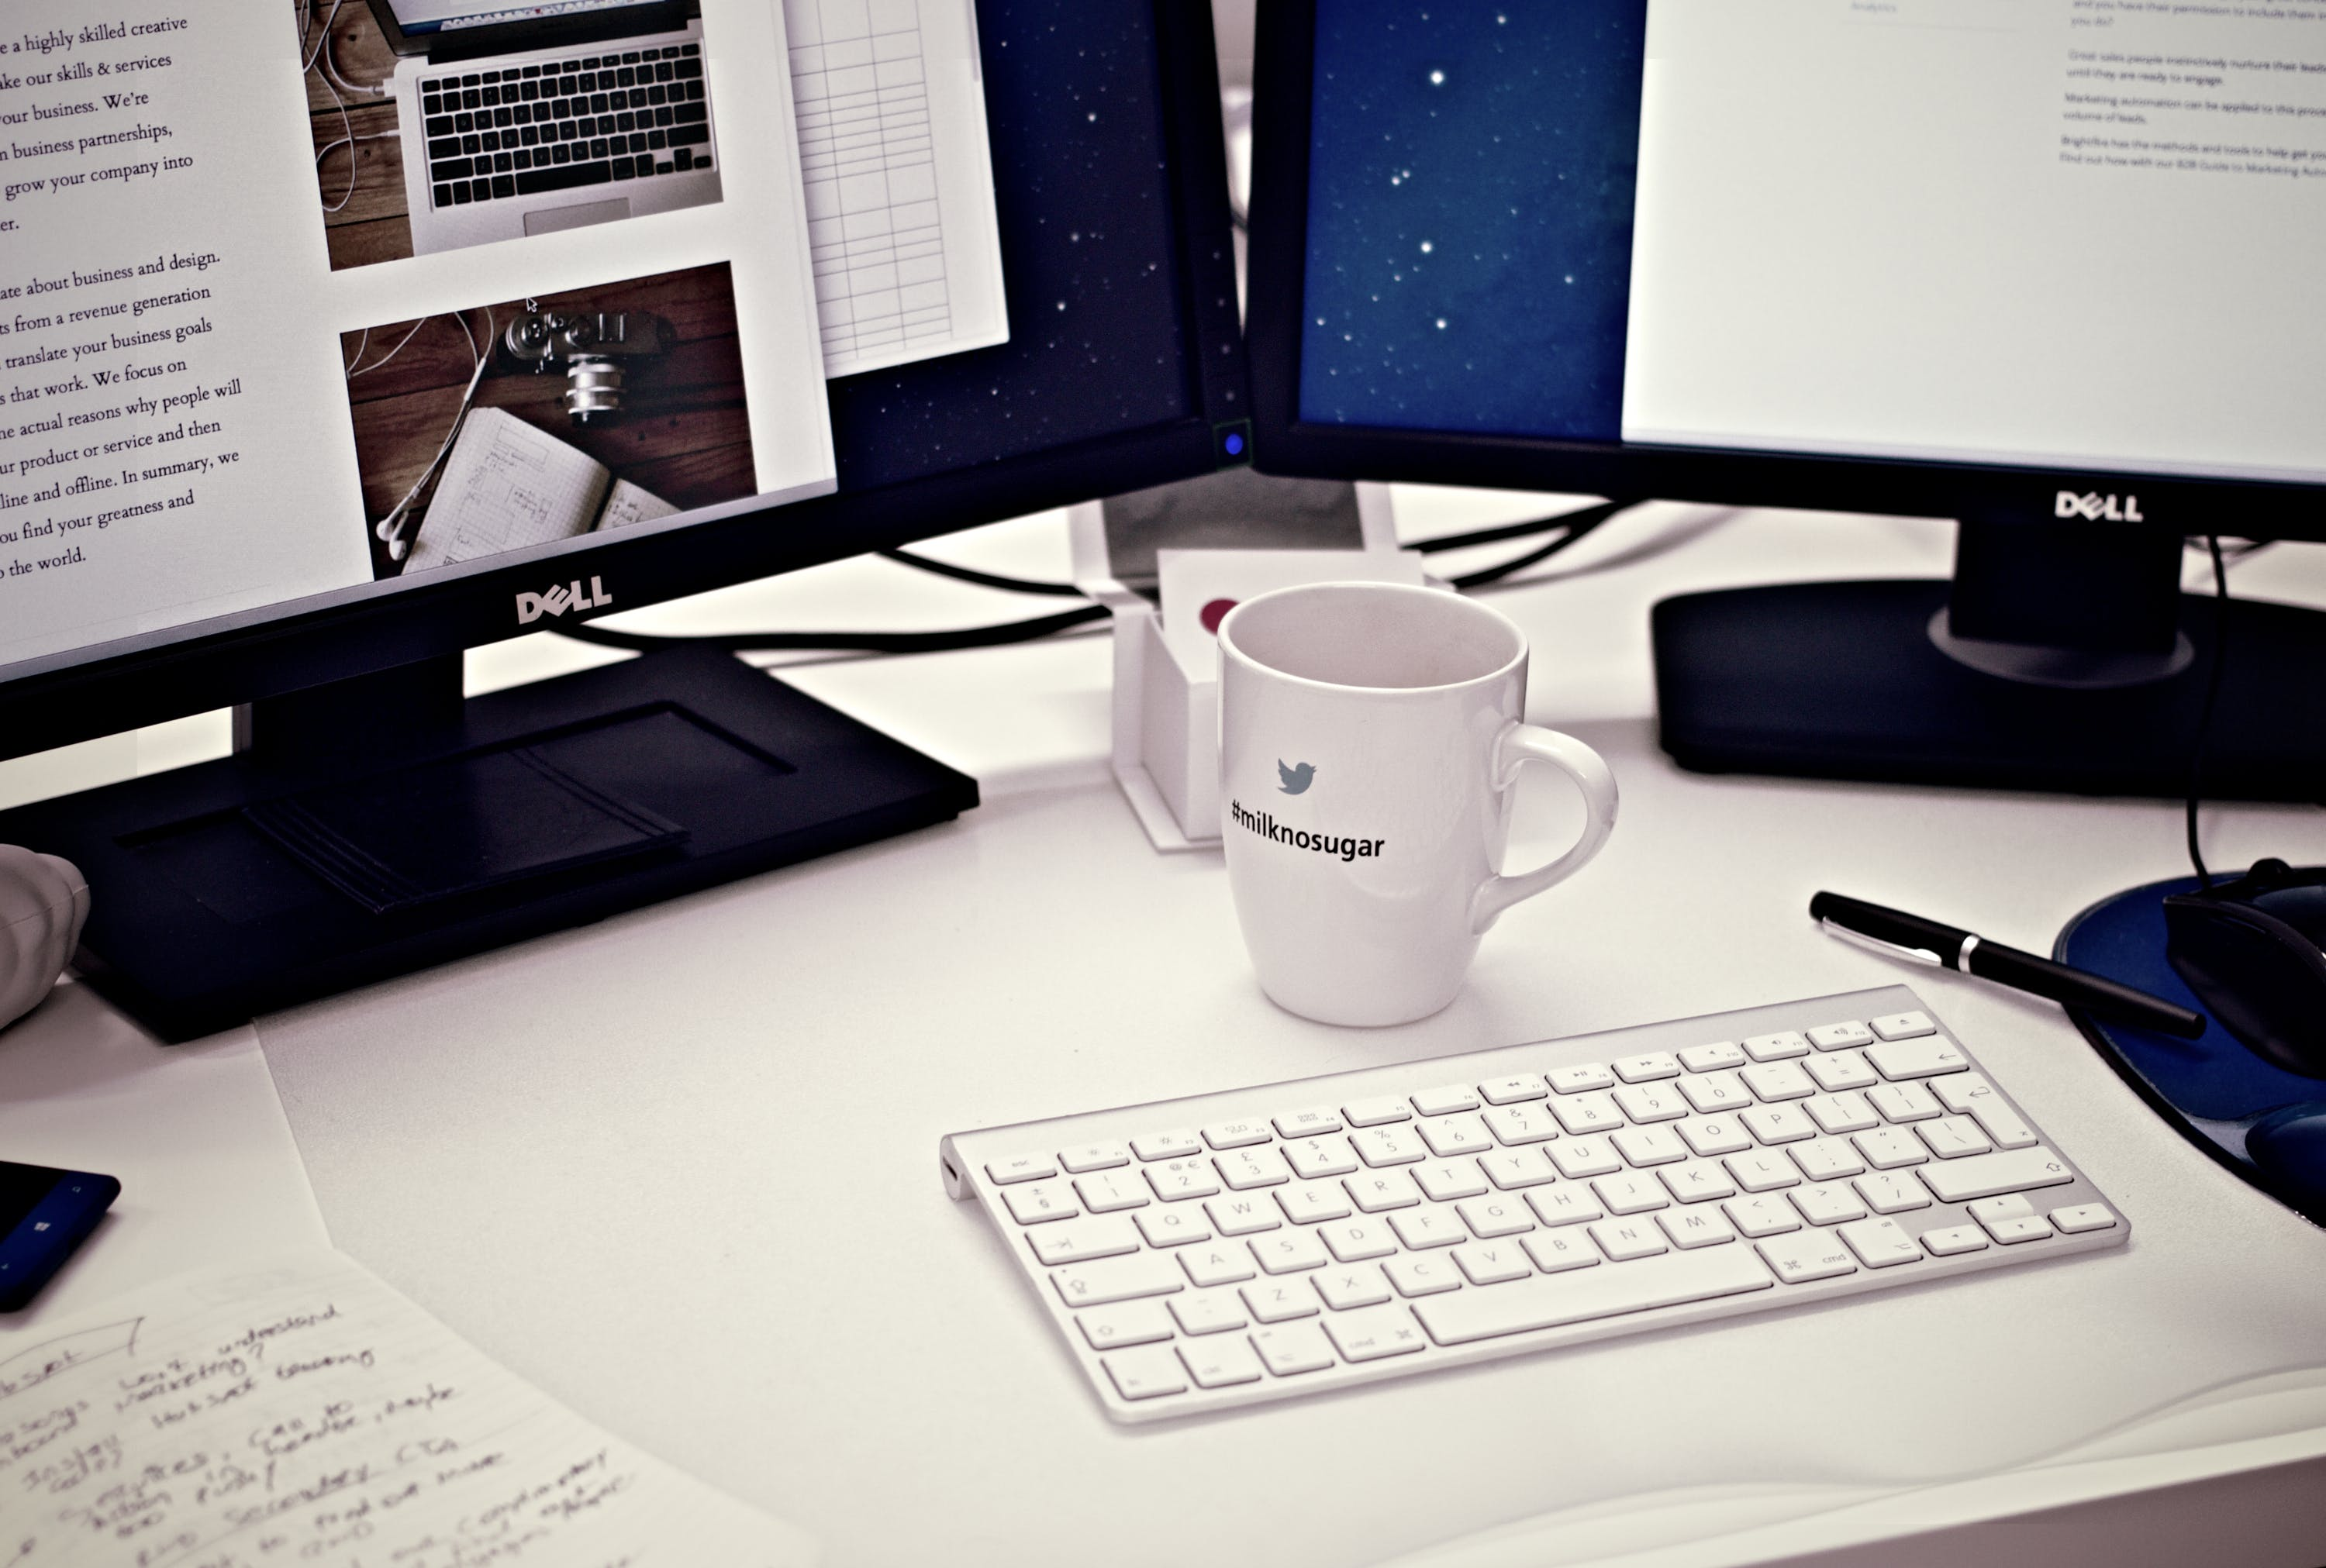 White Ceramic Mug Between Apple Magic Keyboard and Two Flat Screen Computer Monitors